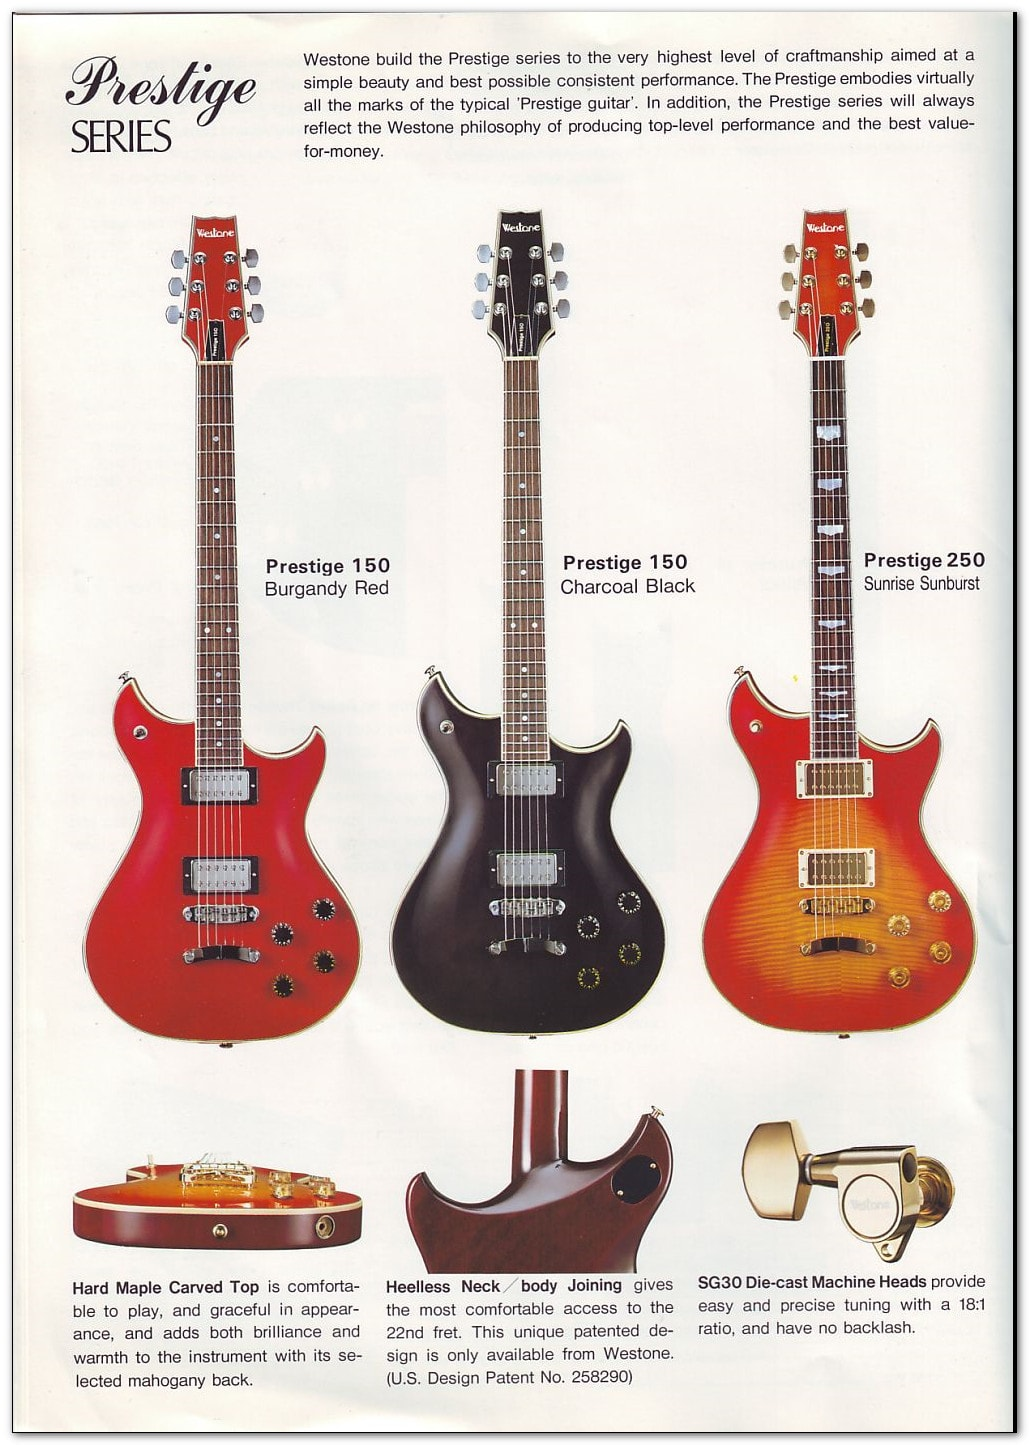 19823 Catalogue  1983 US Price List  Westone Guitars